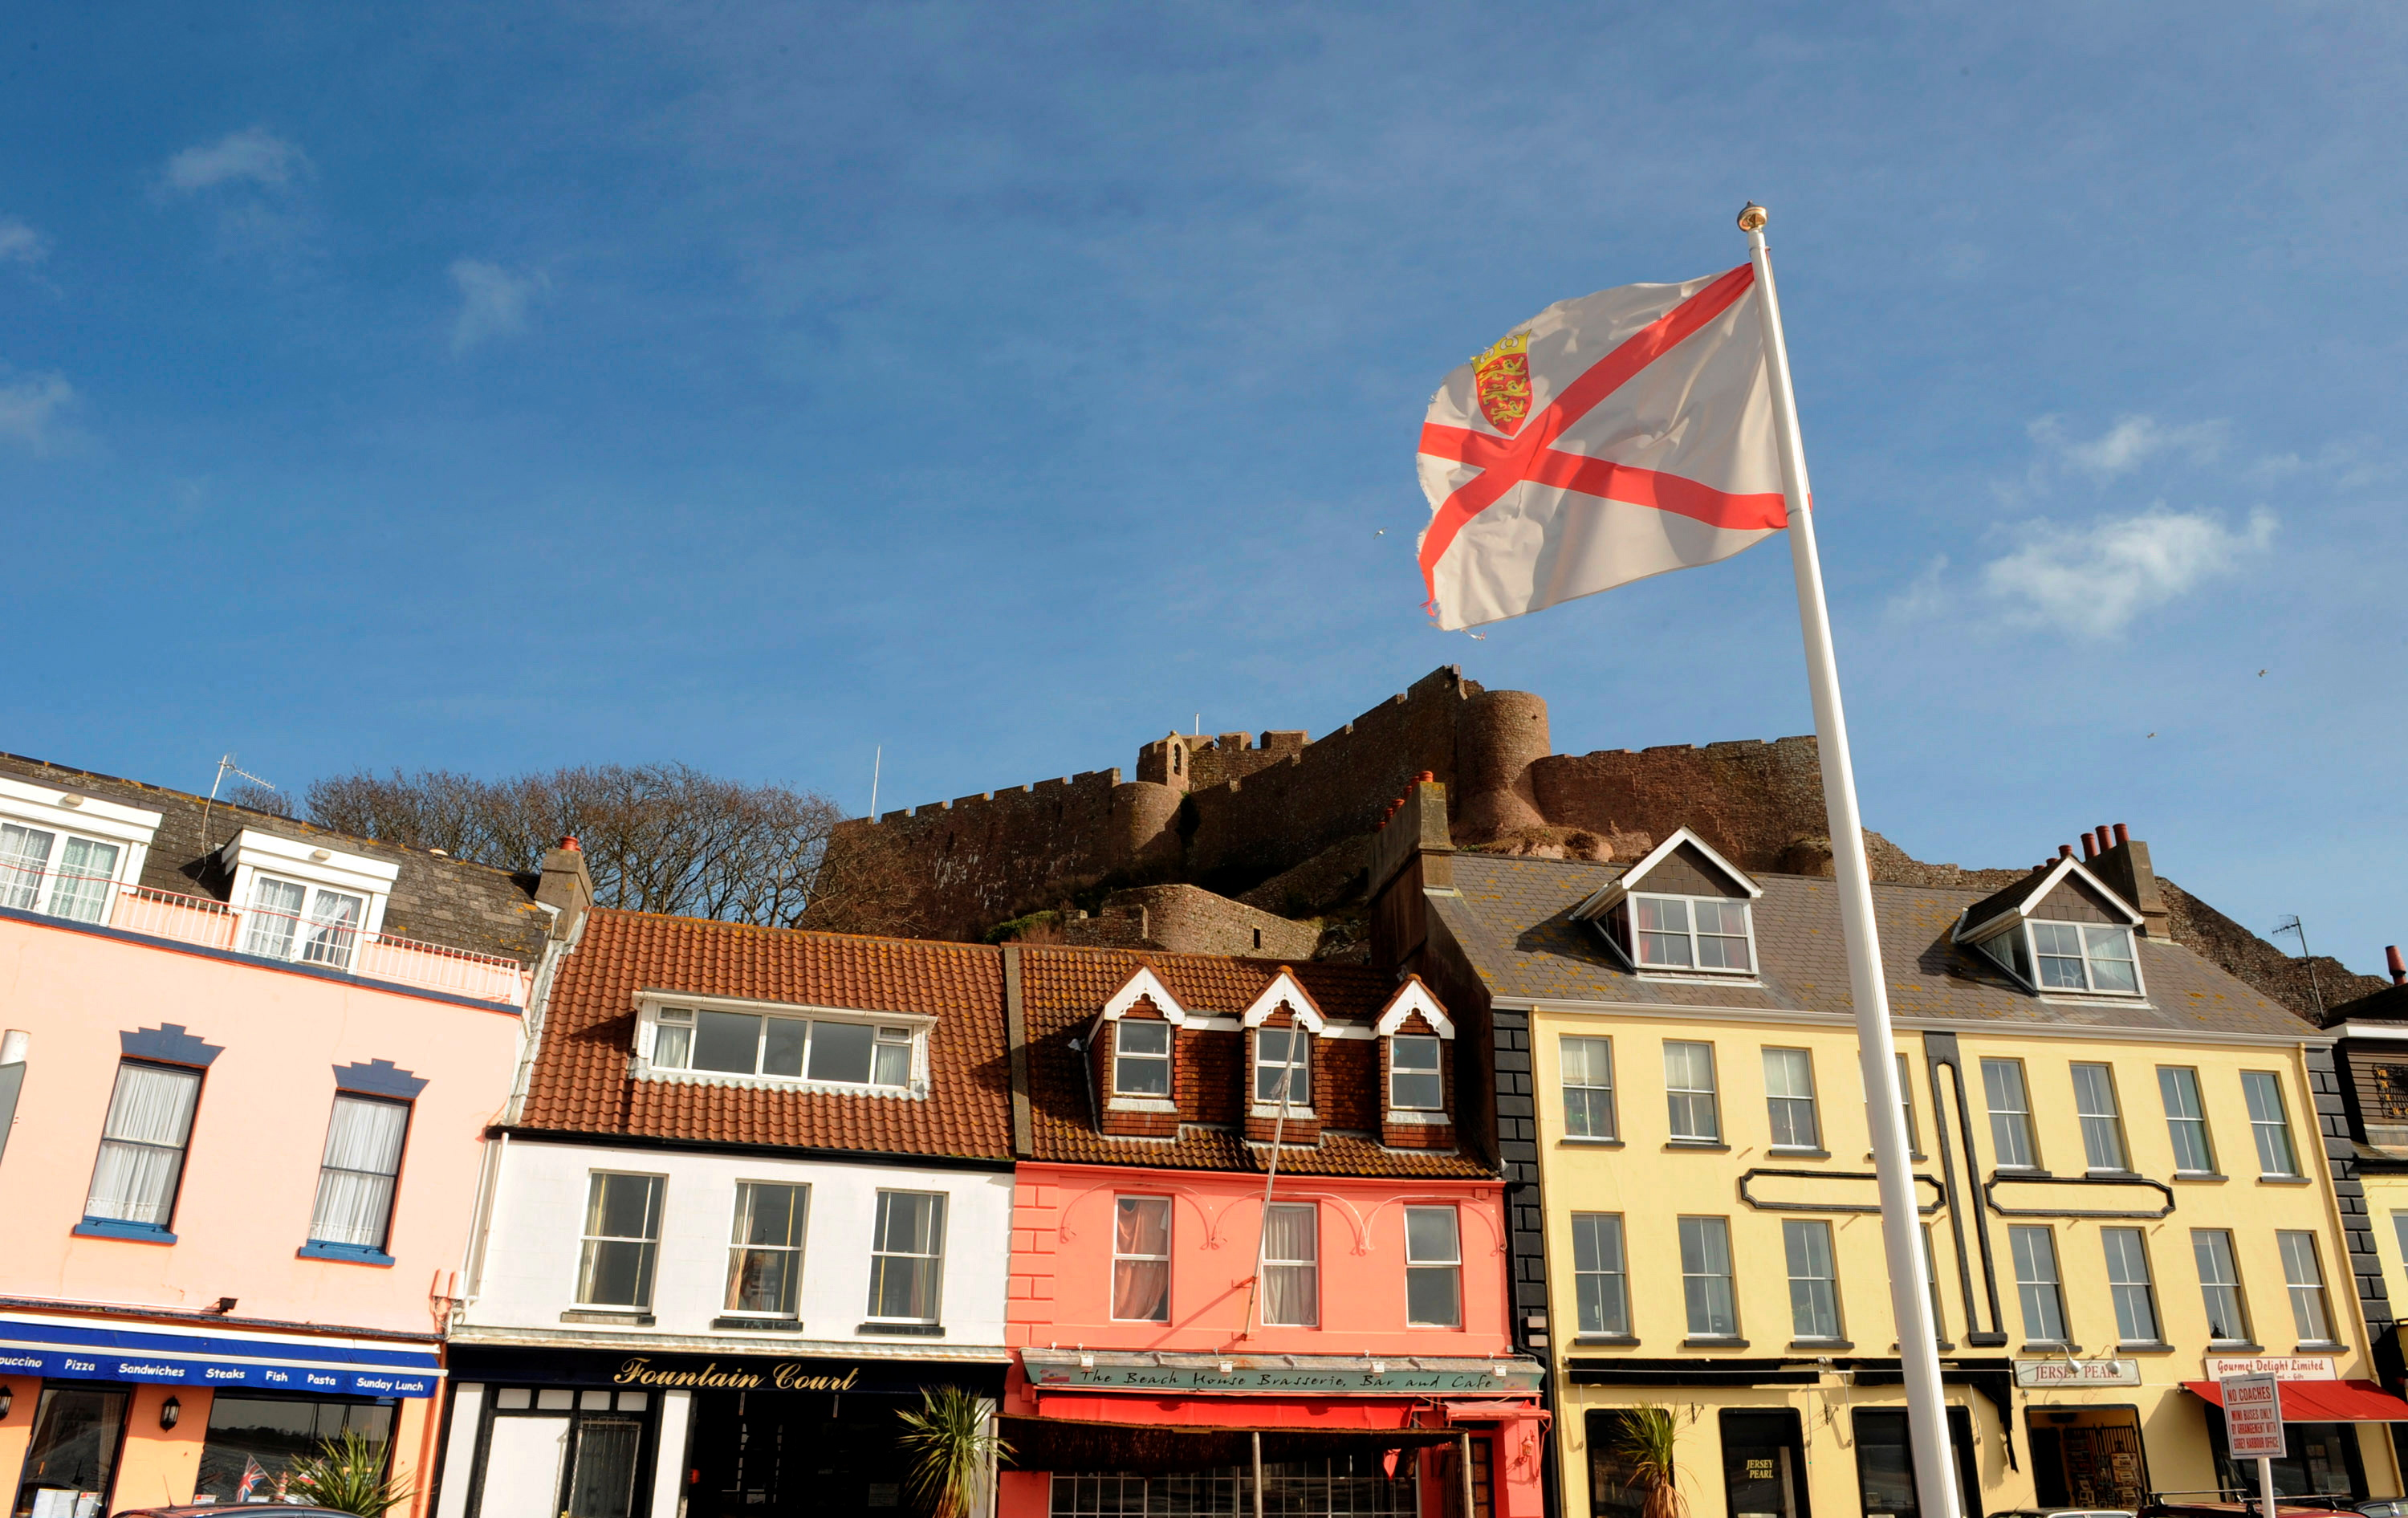 The Mont Orgueil Castle is seen behind an island flag at Gorey Harbour in Jersey, in this February 26, 2008 file photo.  REUTERS/Toby Melville